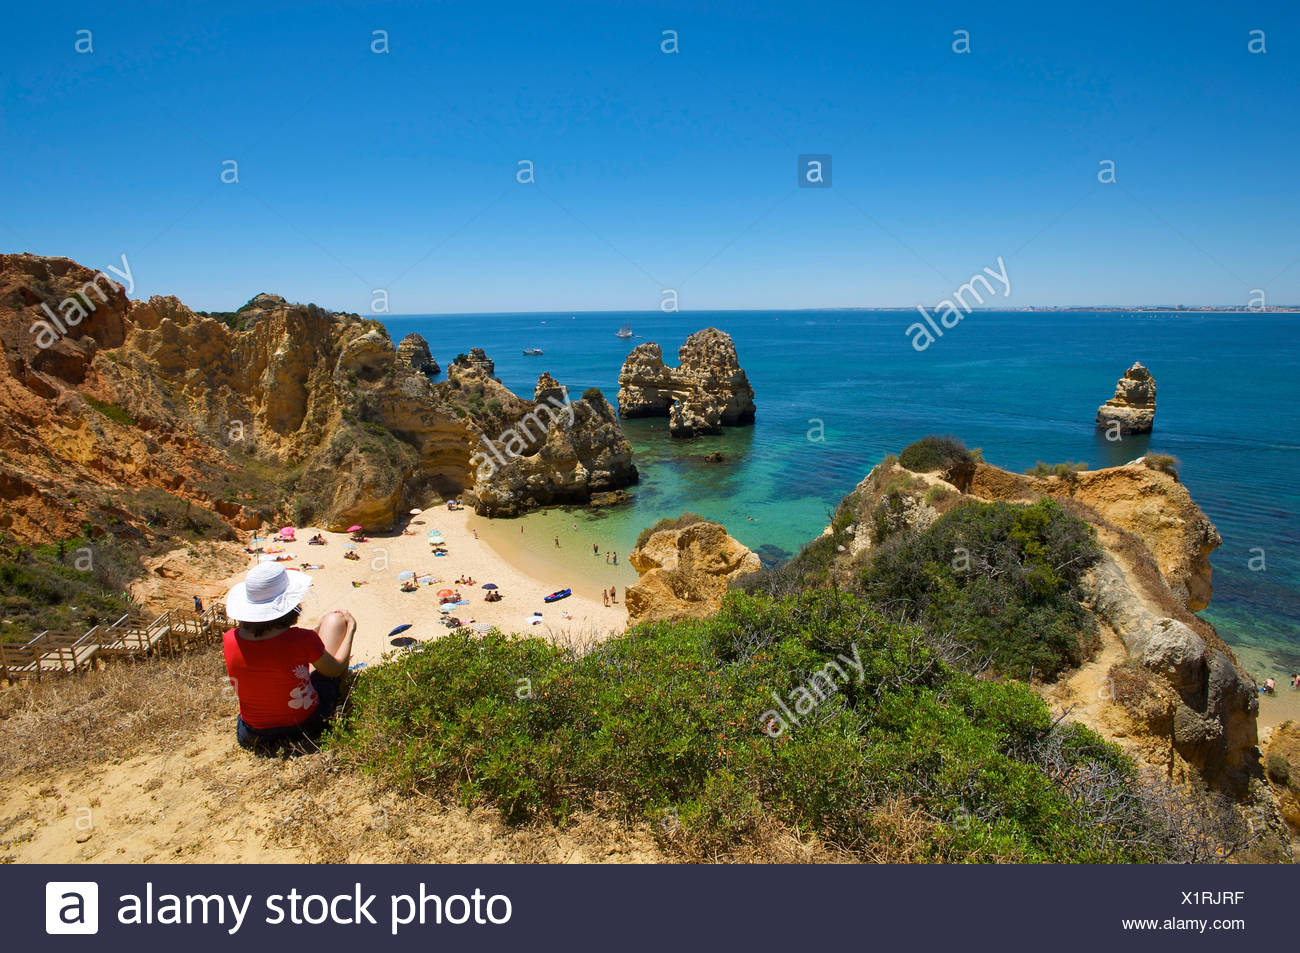 Praia do Camilo near Lagos, Algarve, Portugal, Europe - Stock Image